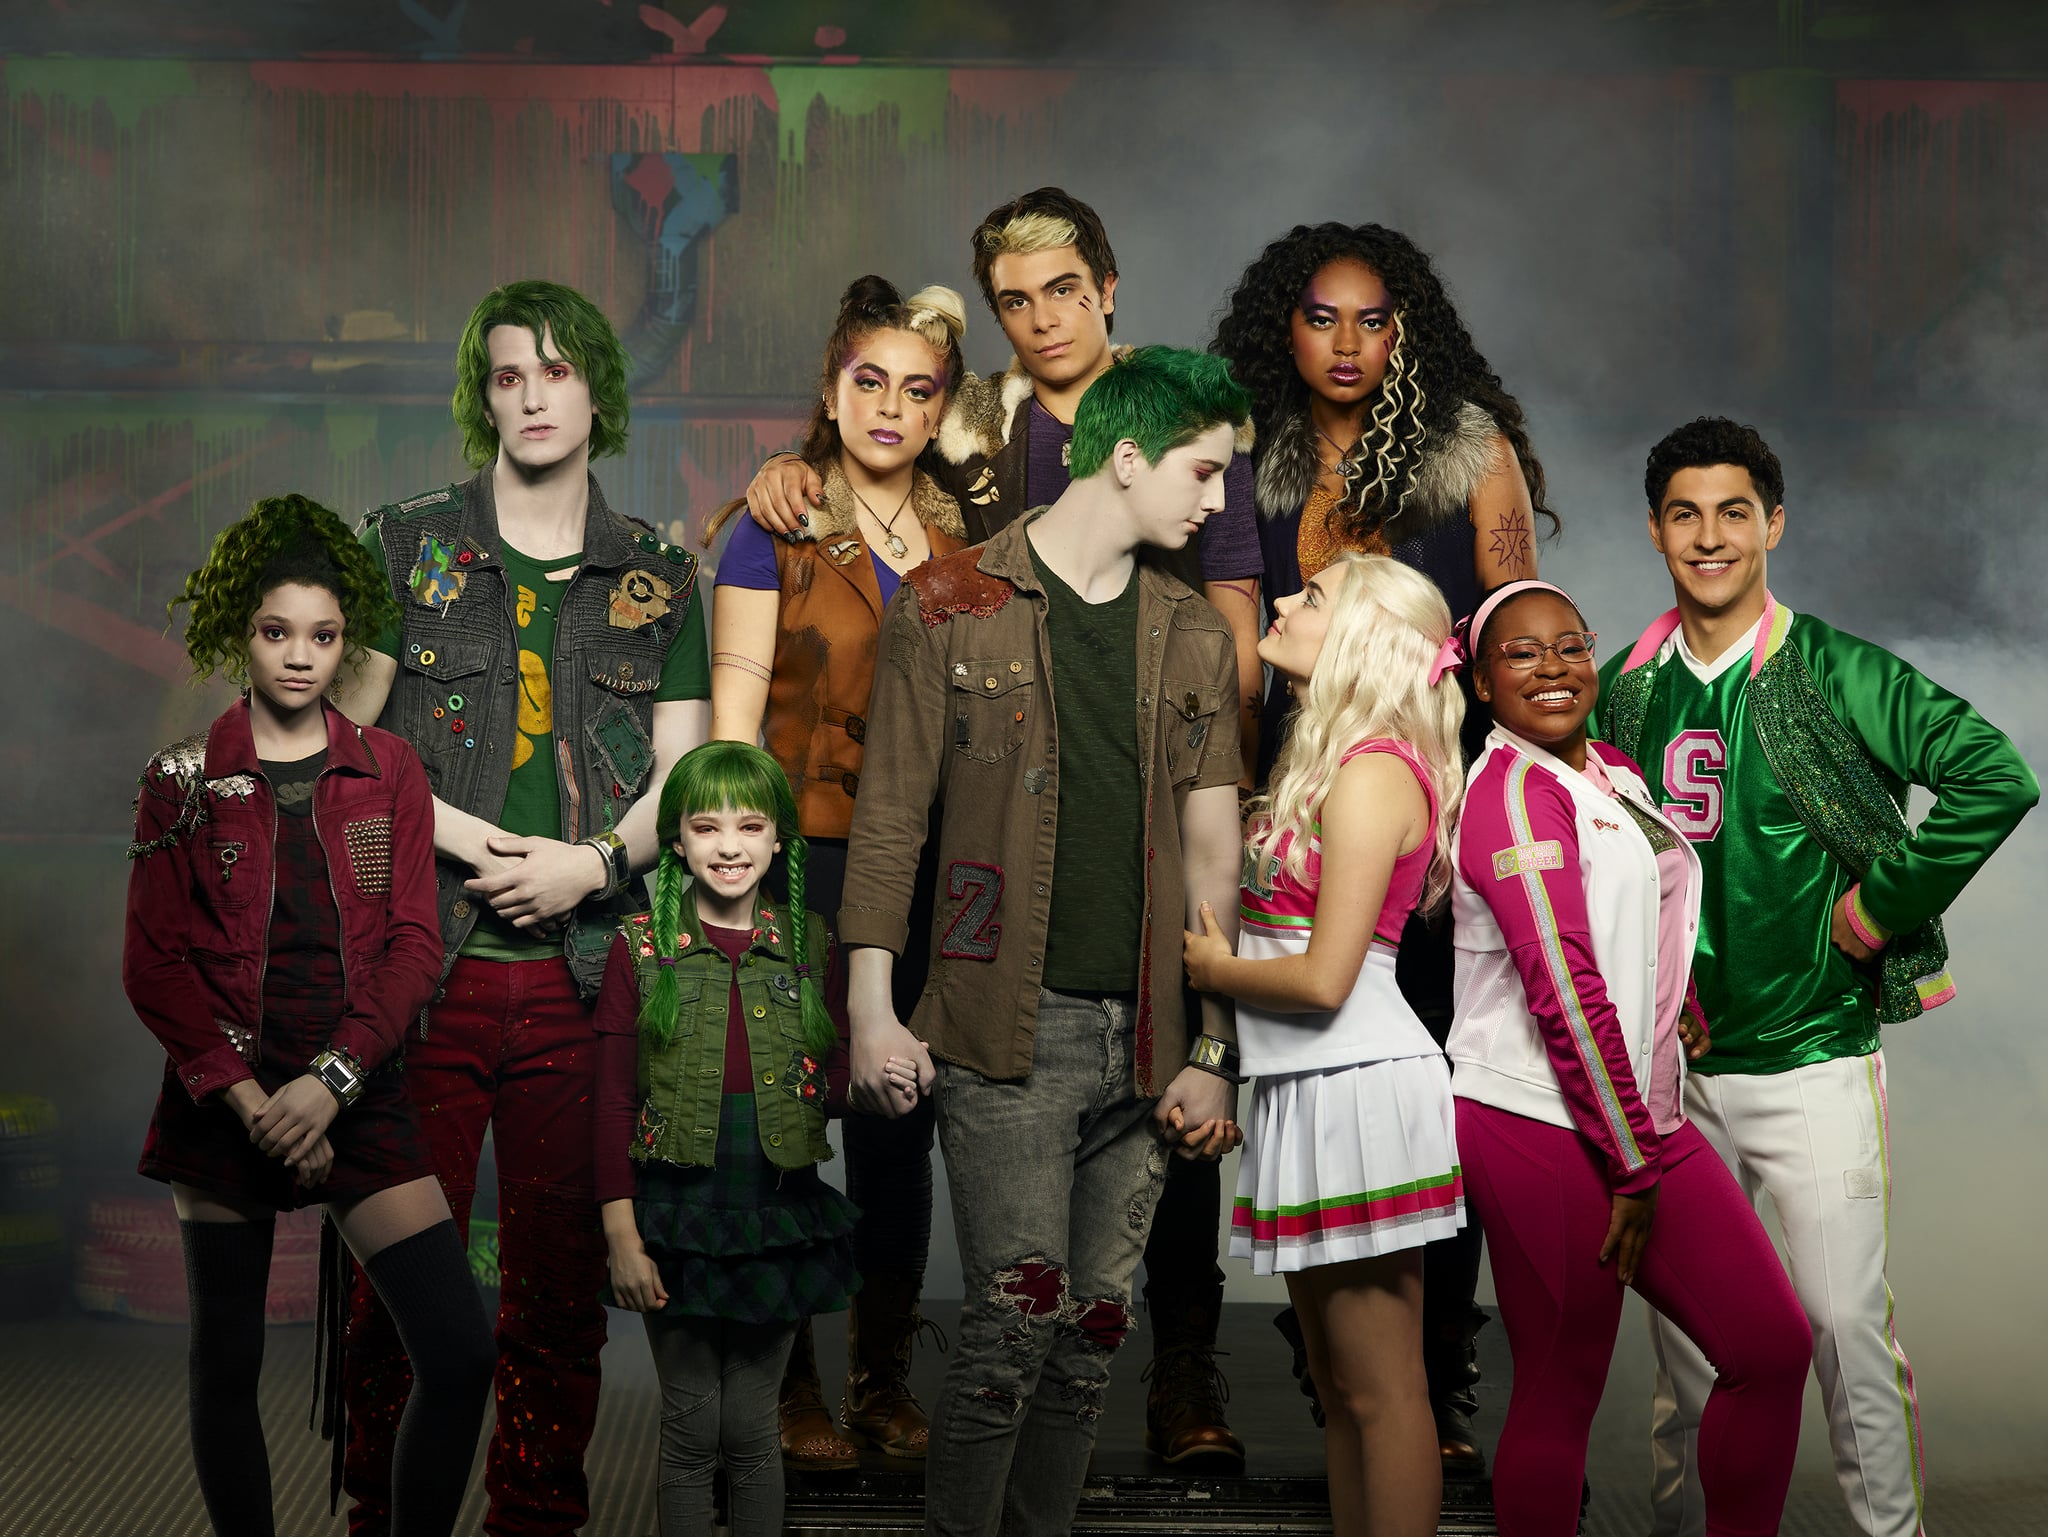 ZOMBIES 2 - Disney Channel's